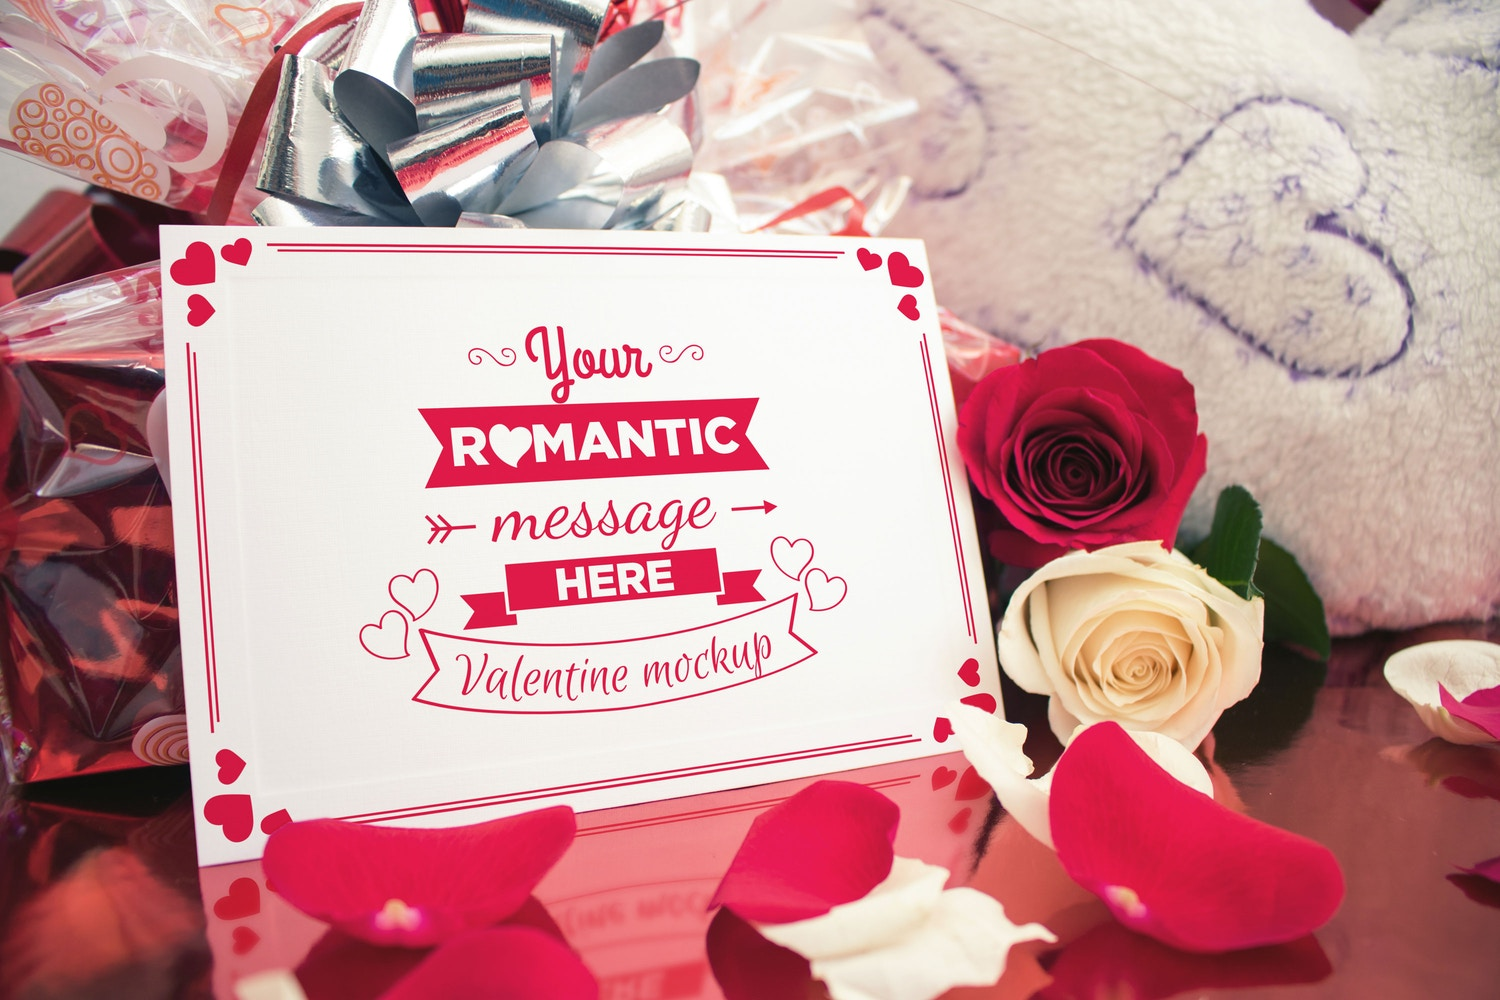 Valentine Card Mockup 01 by Eru  on Original Mockups